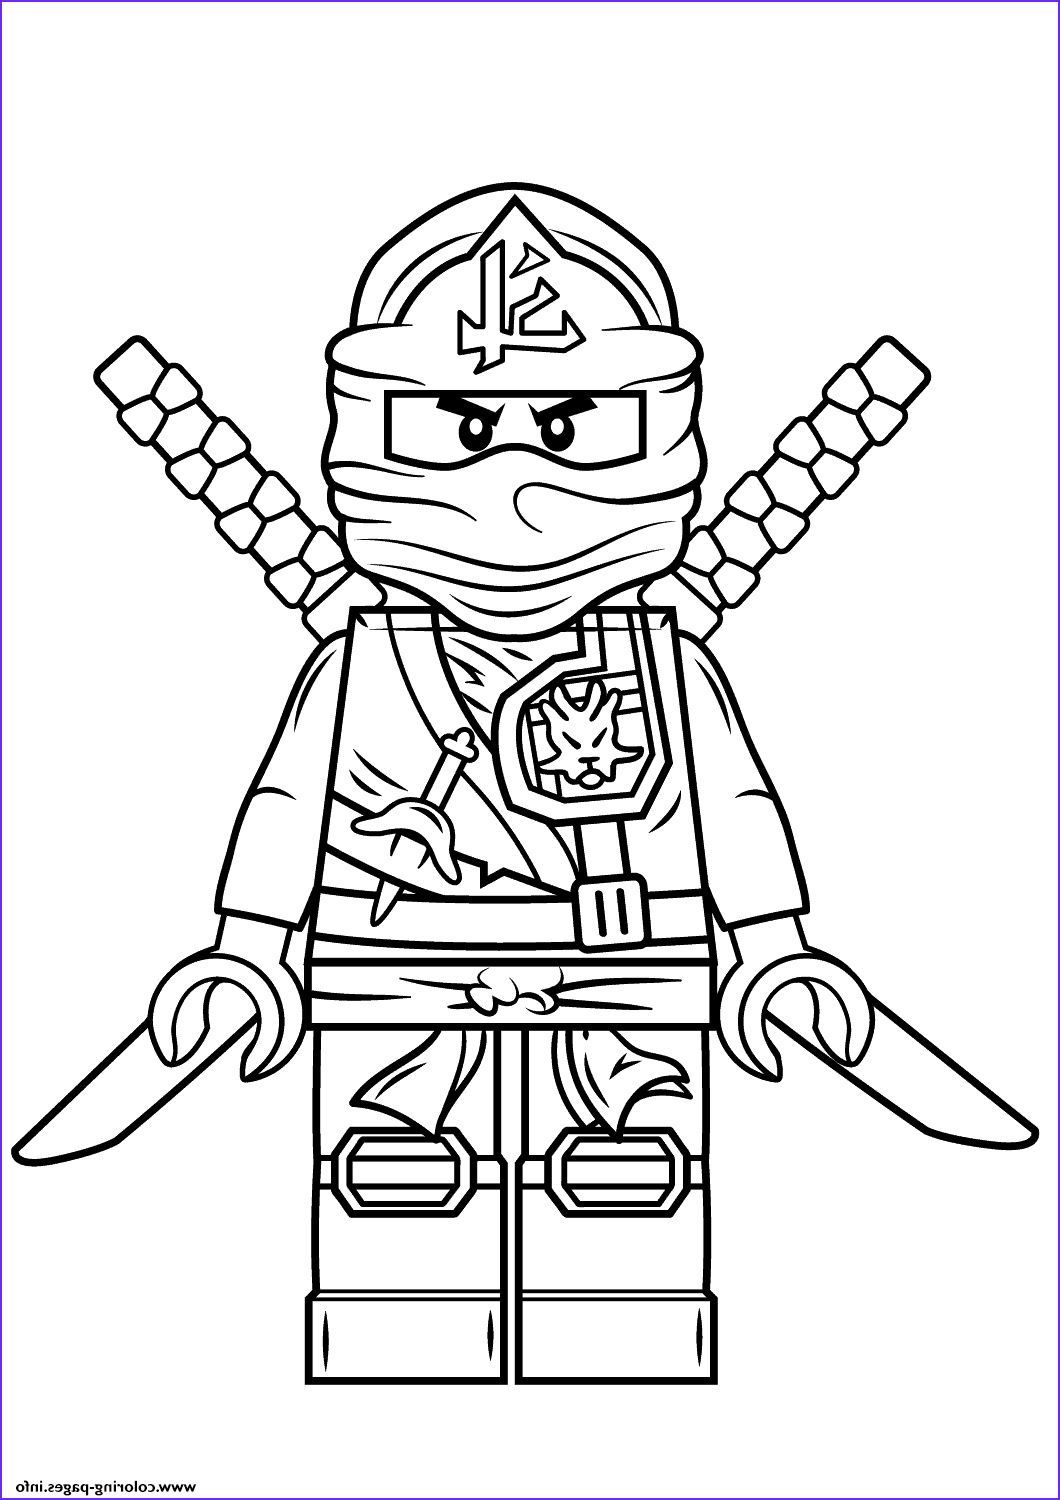 Lego Ninjago Coloring Pages In 2020 Lego Coloring Pages Ninjago Coloring Pages Lego Coloring